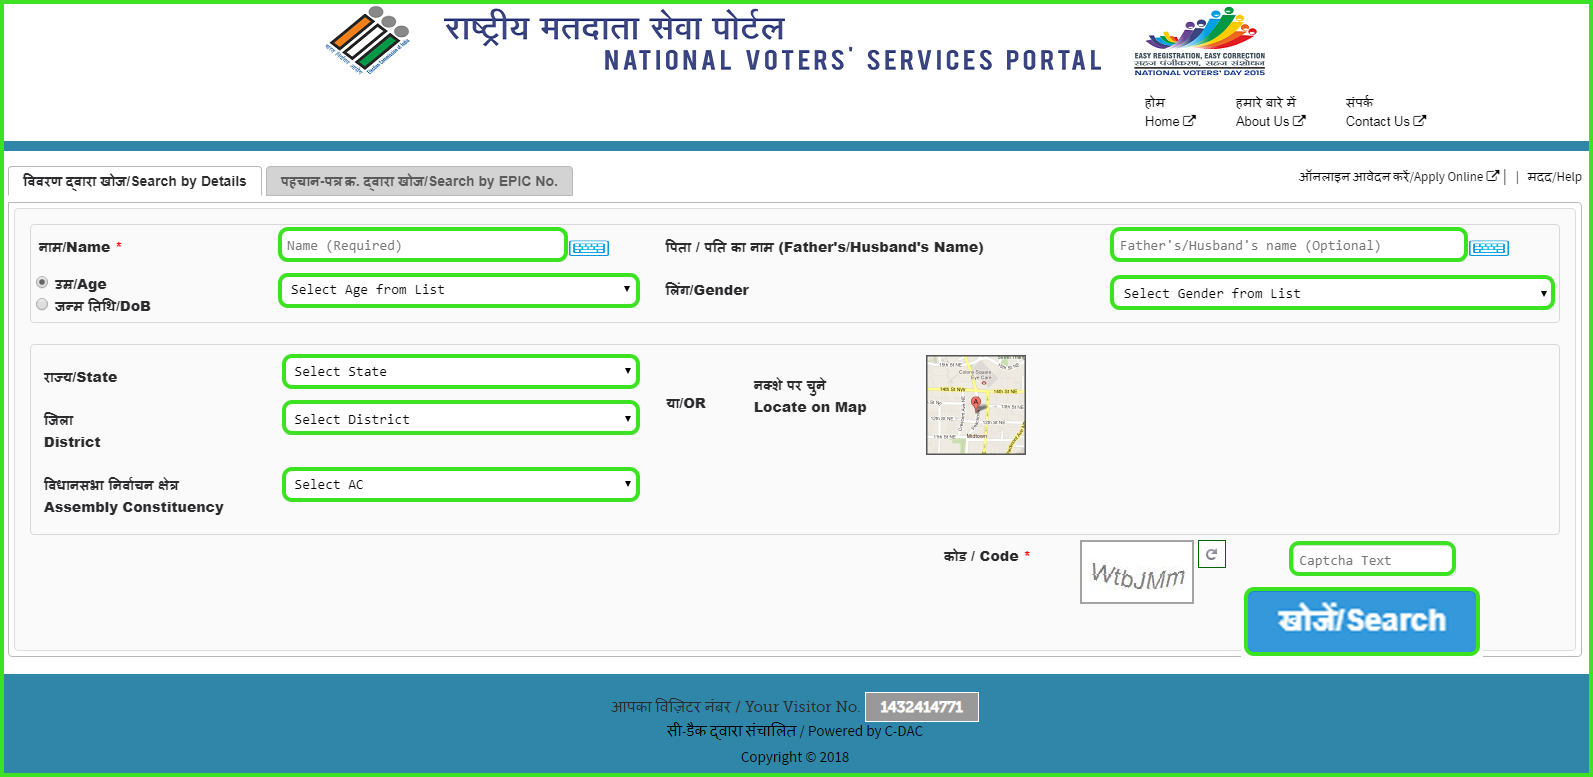 Verification of Voter ID